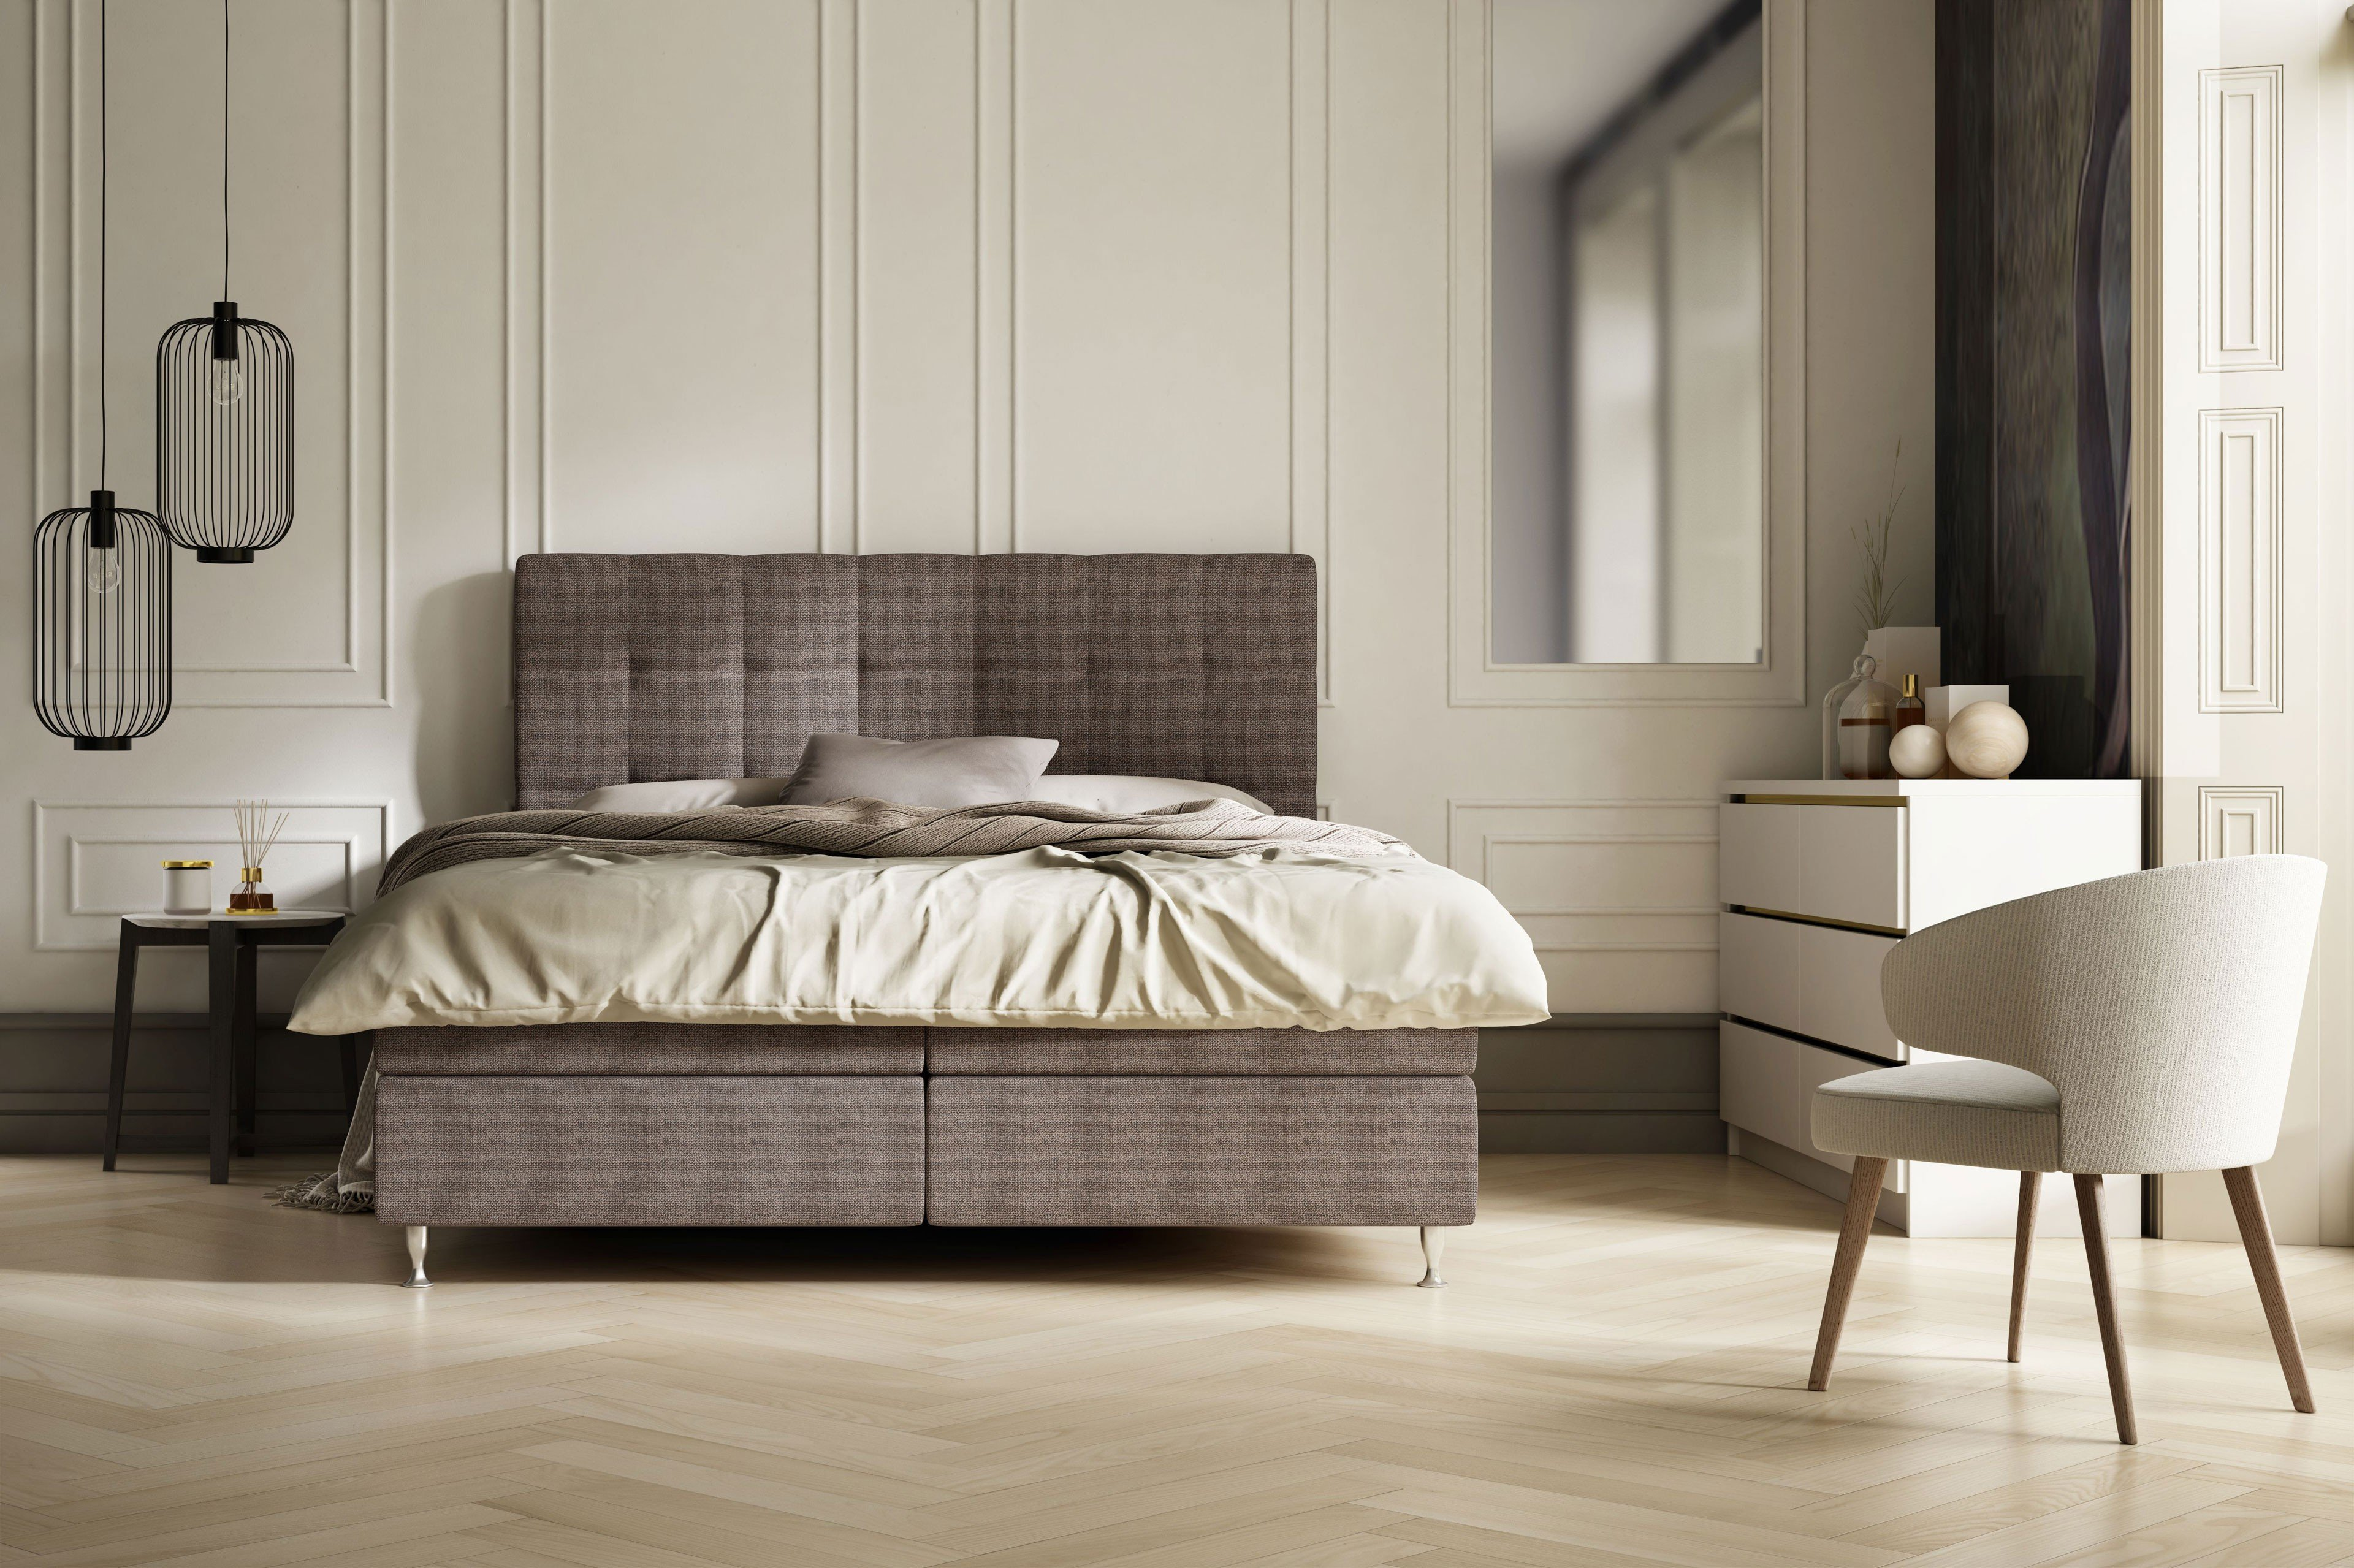 banuat mbel tessin tessin mbel werner komfortabel with banuat mbel tessin tessin fabulous mbel. Black Bedroom Furniture Sets. Home Design Ideas